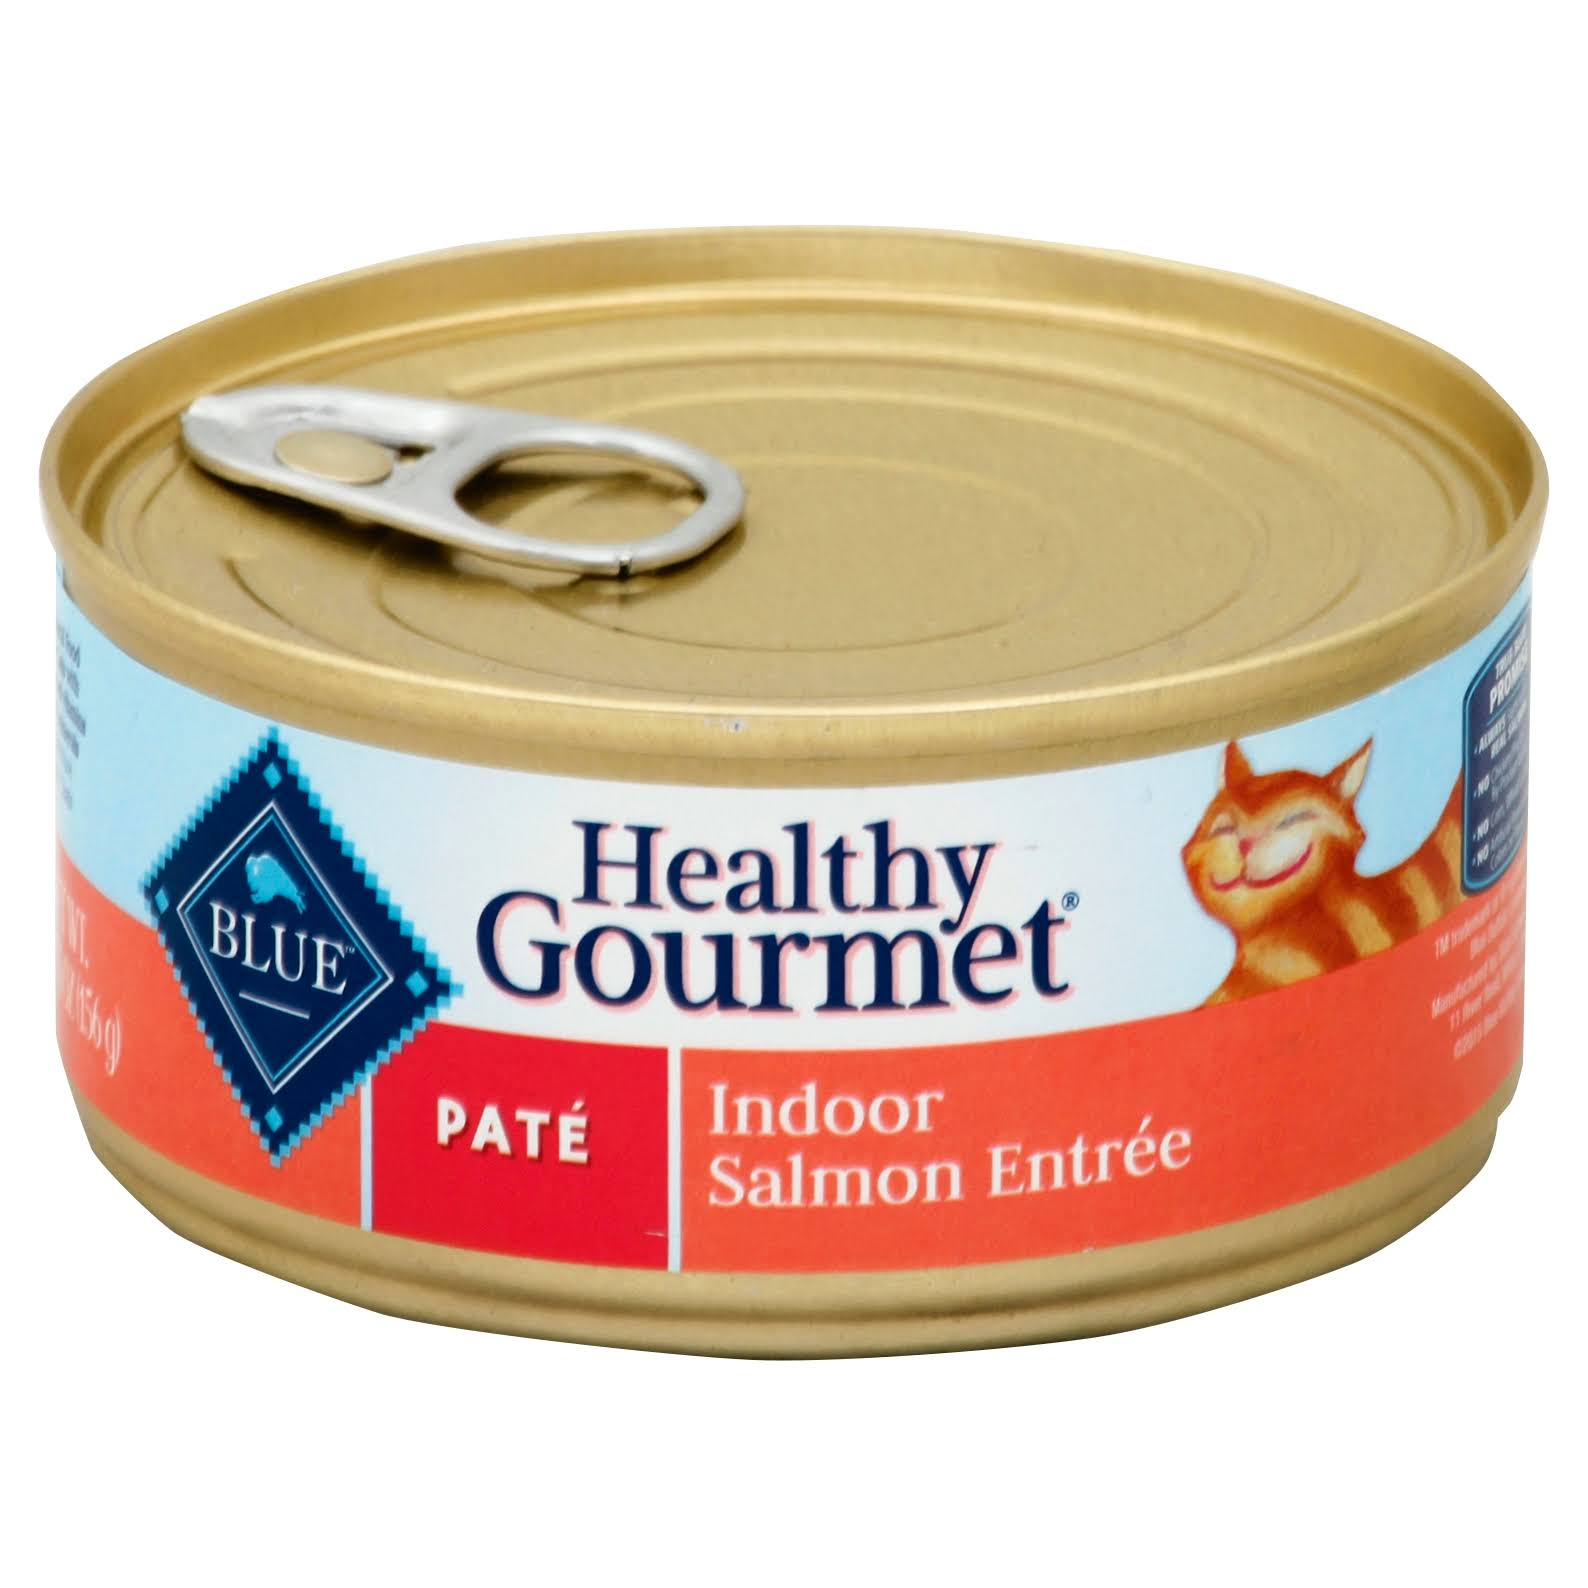 Blue Buffalo Healthy Gourmet Pate - Indoor Salmon Entree